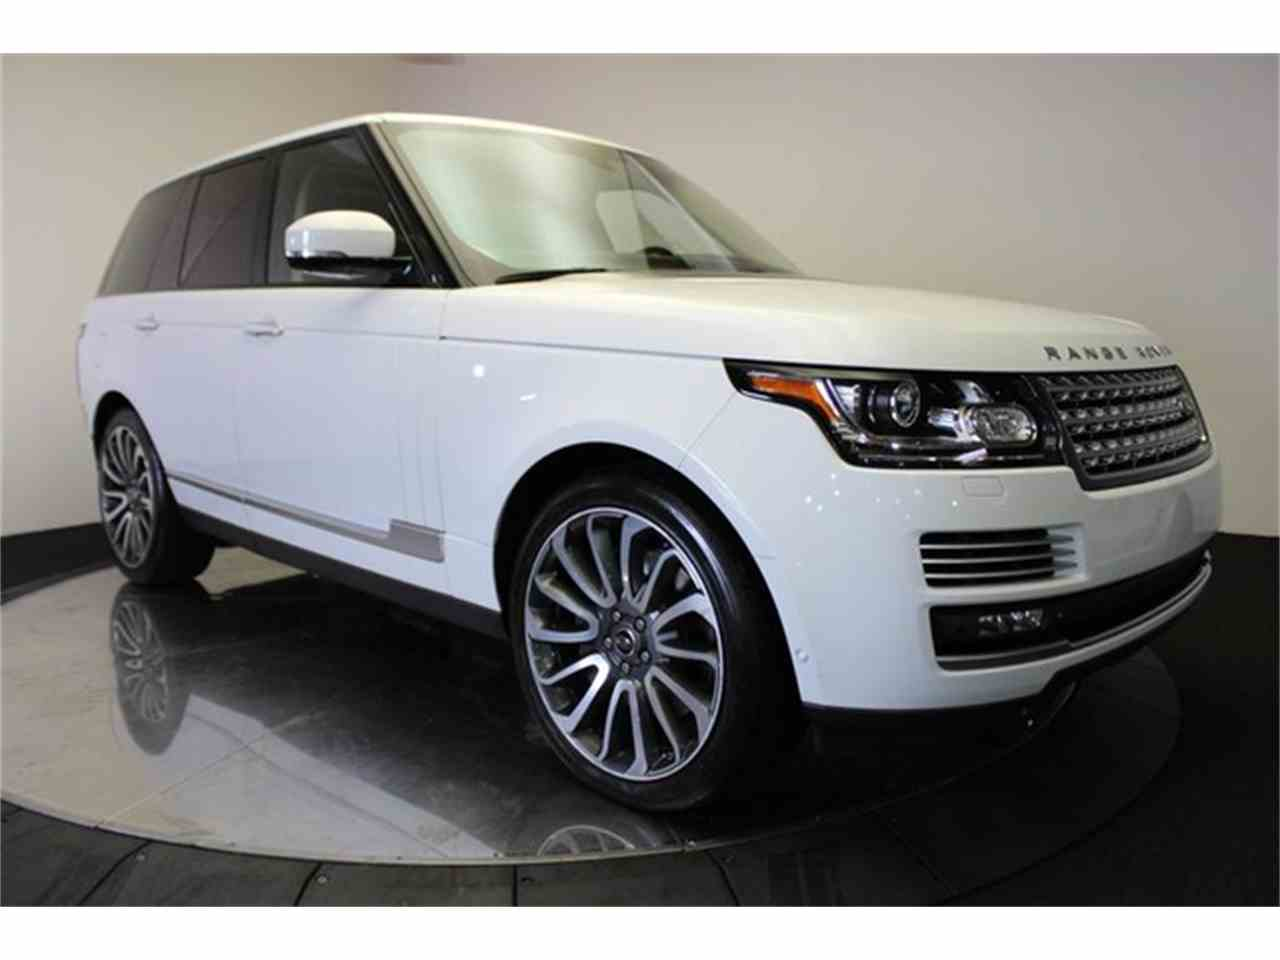 Large Picture of 2013 Land Rover Range Rover - KHXU